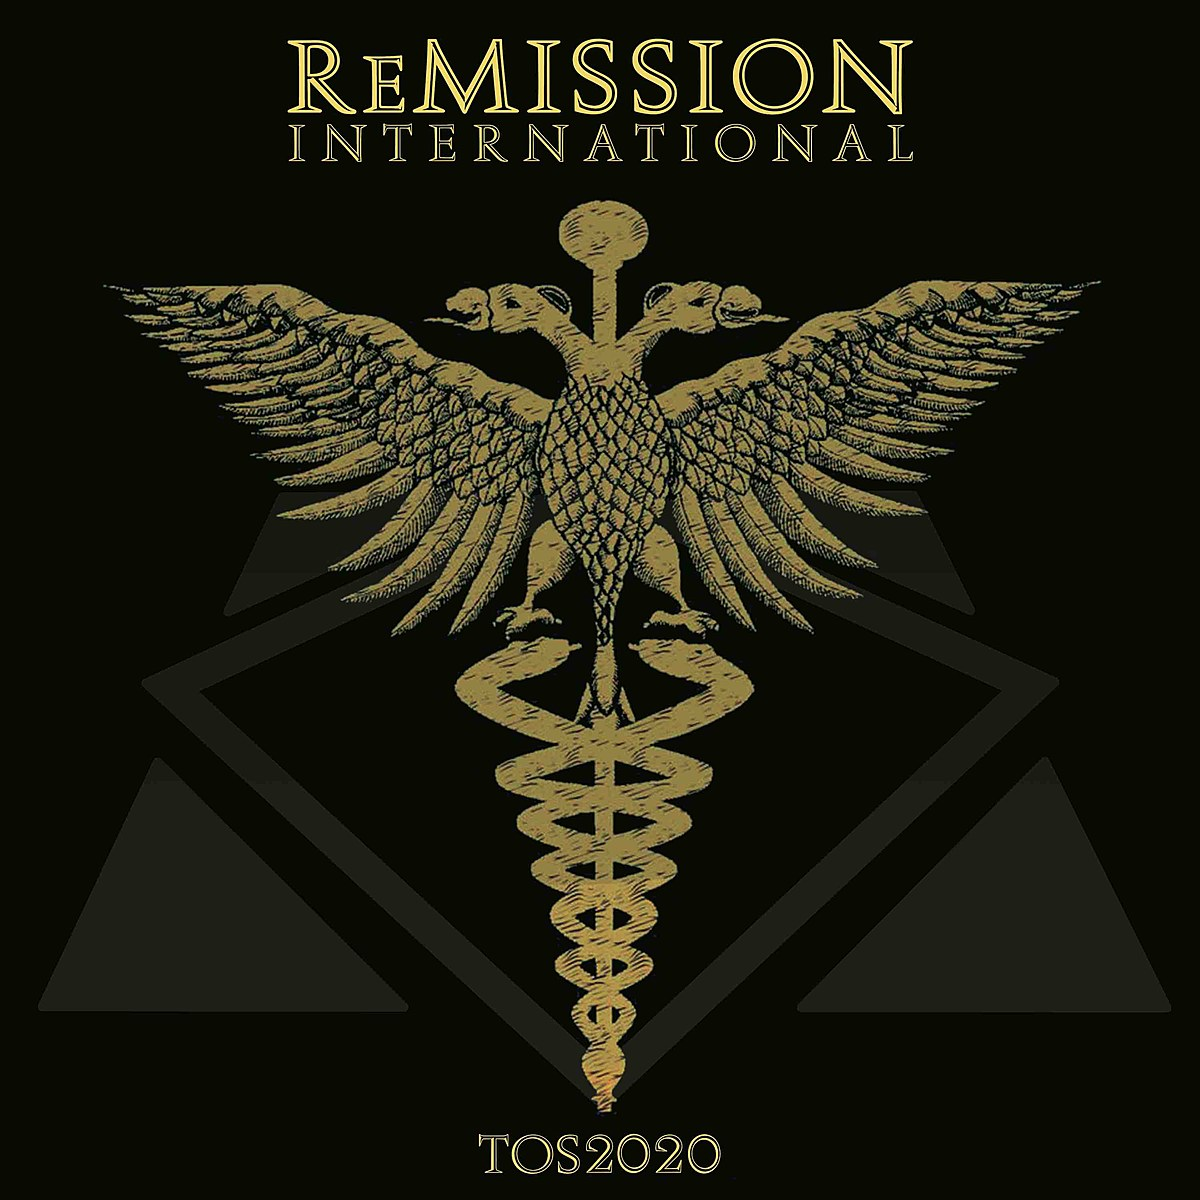 """mems The Cure, Slowdive, Depeche Mode & more remake The Mission's """"Tower of Strength"""" for COVID relief"""